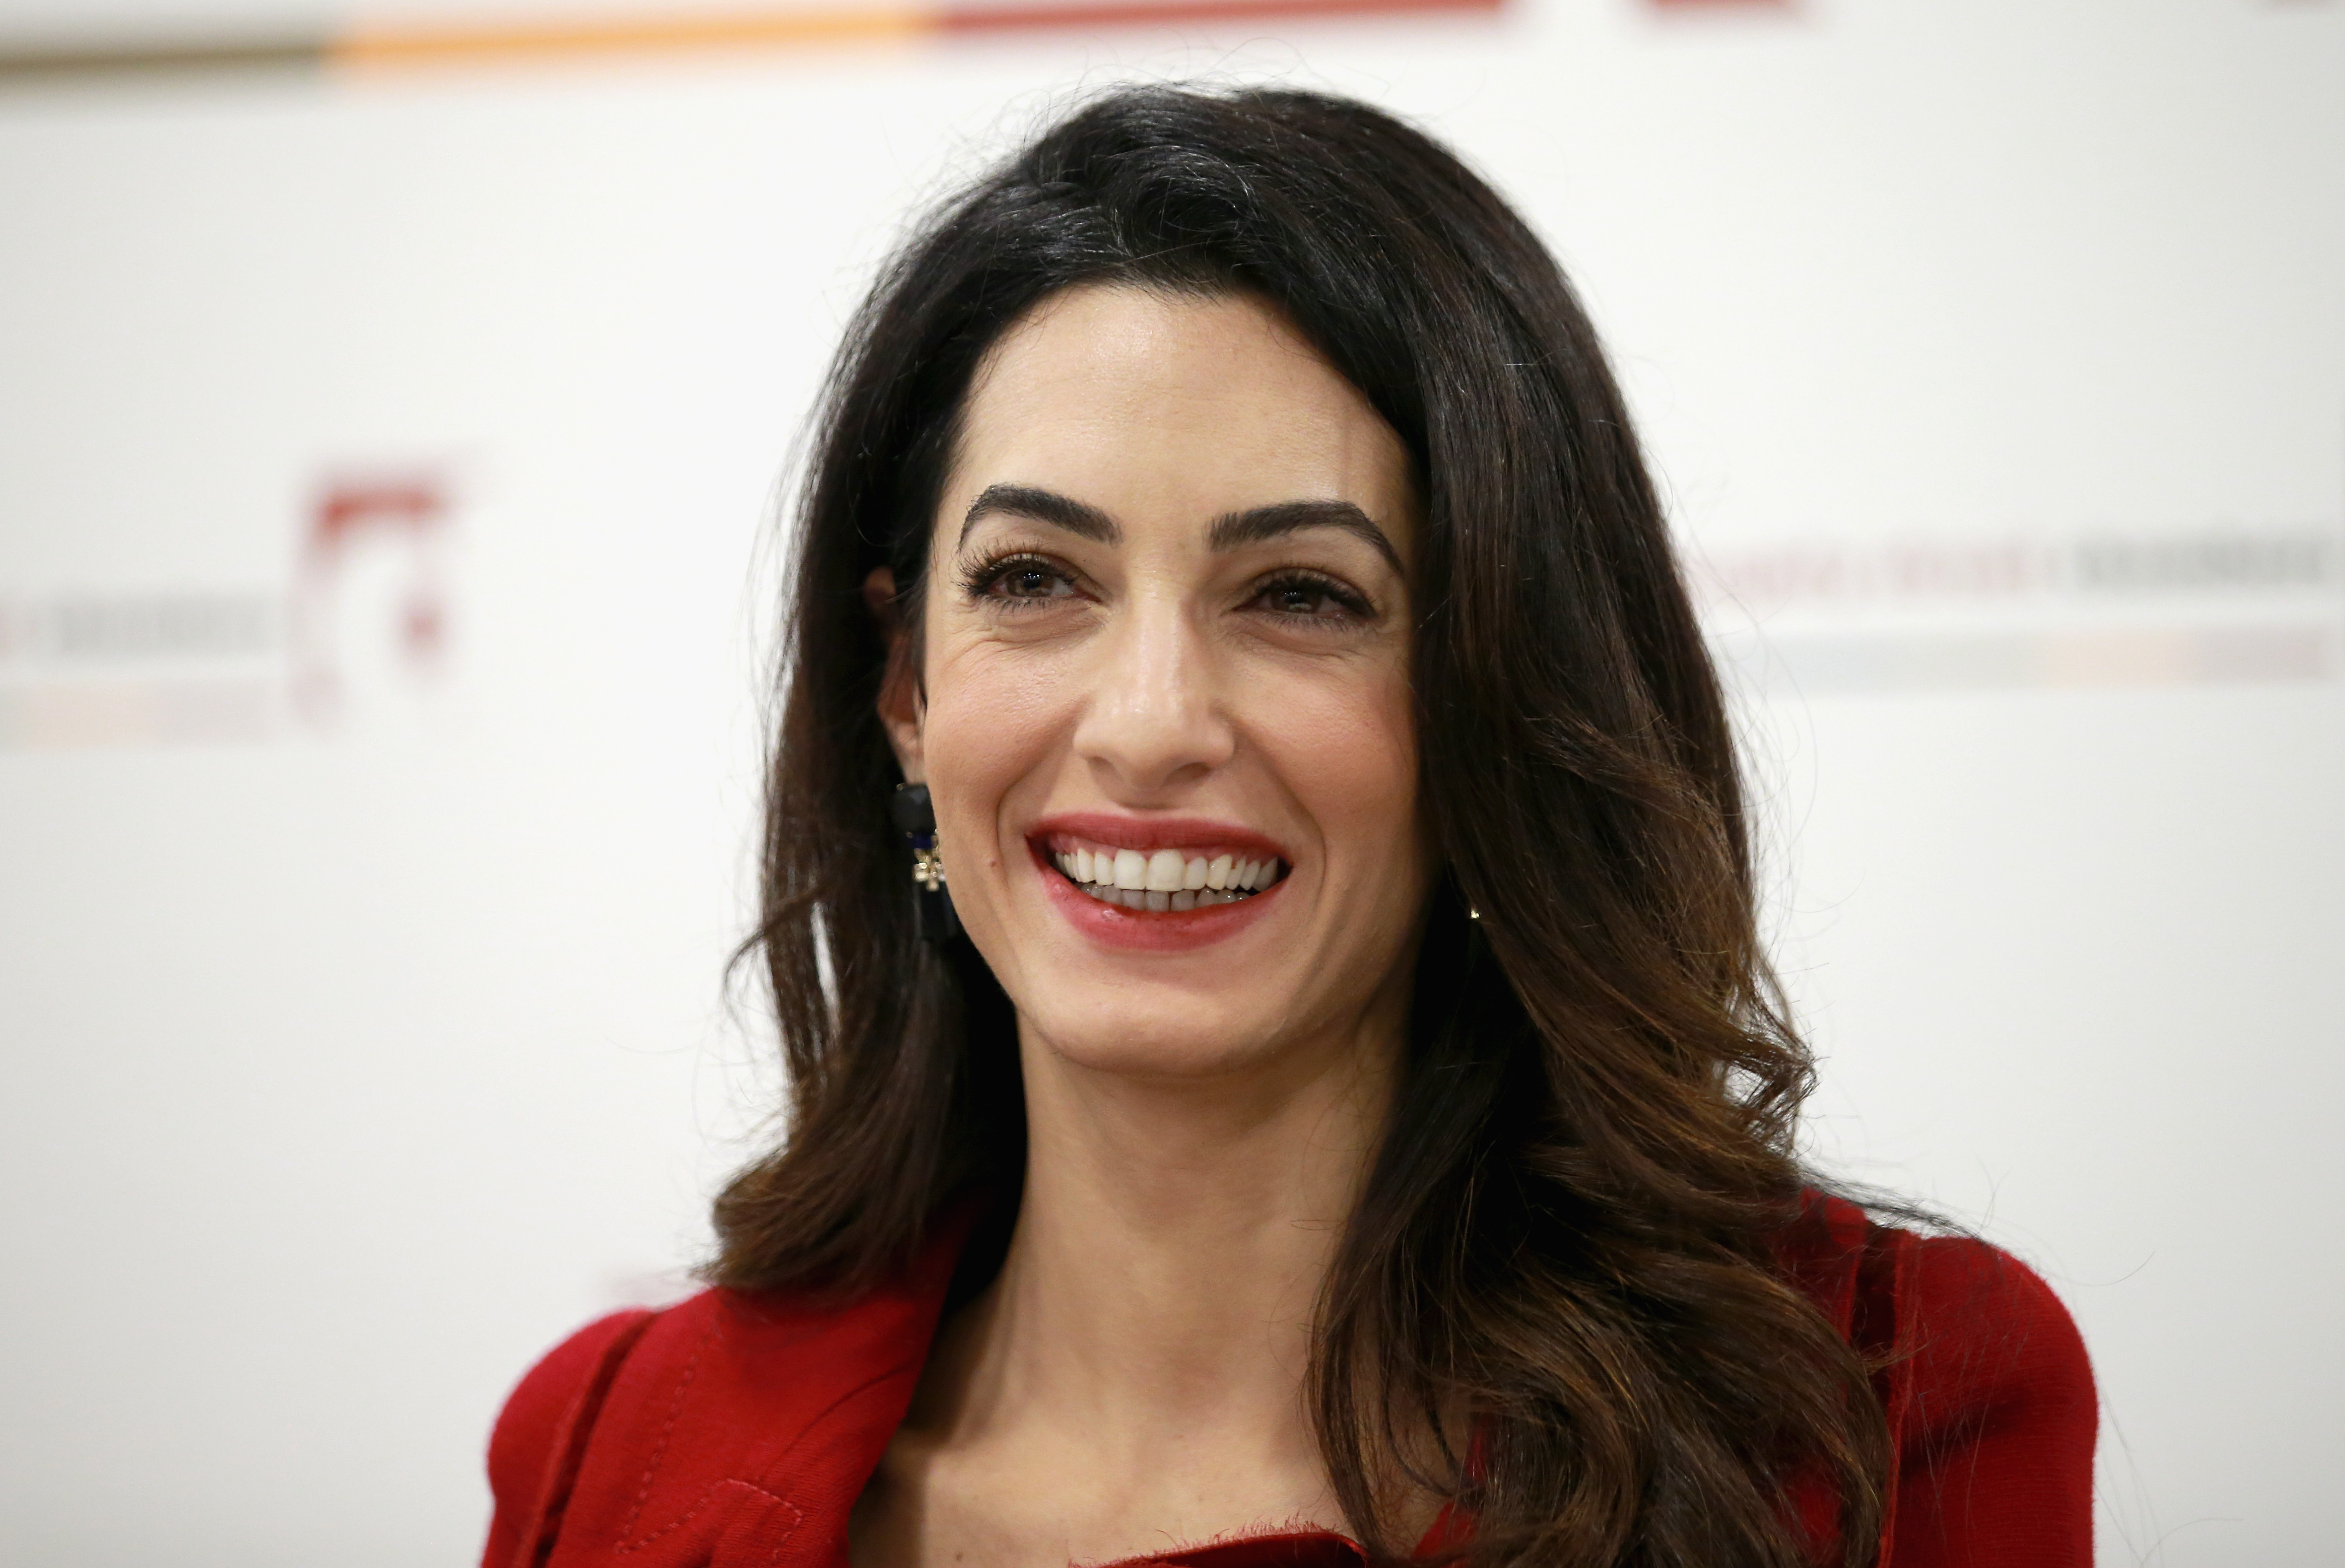 4620x3090 - Amal Clooney Wallpapers 2